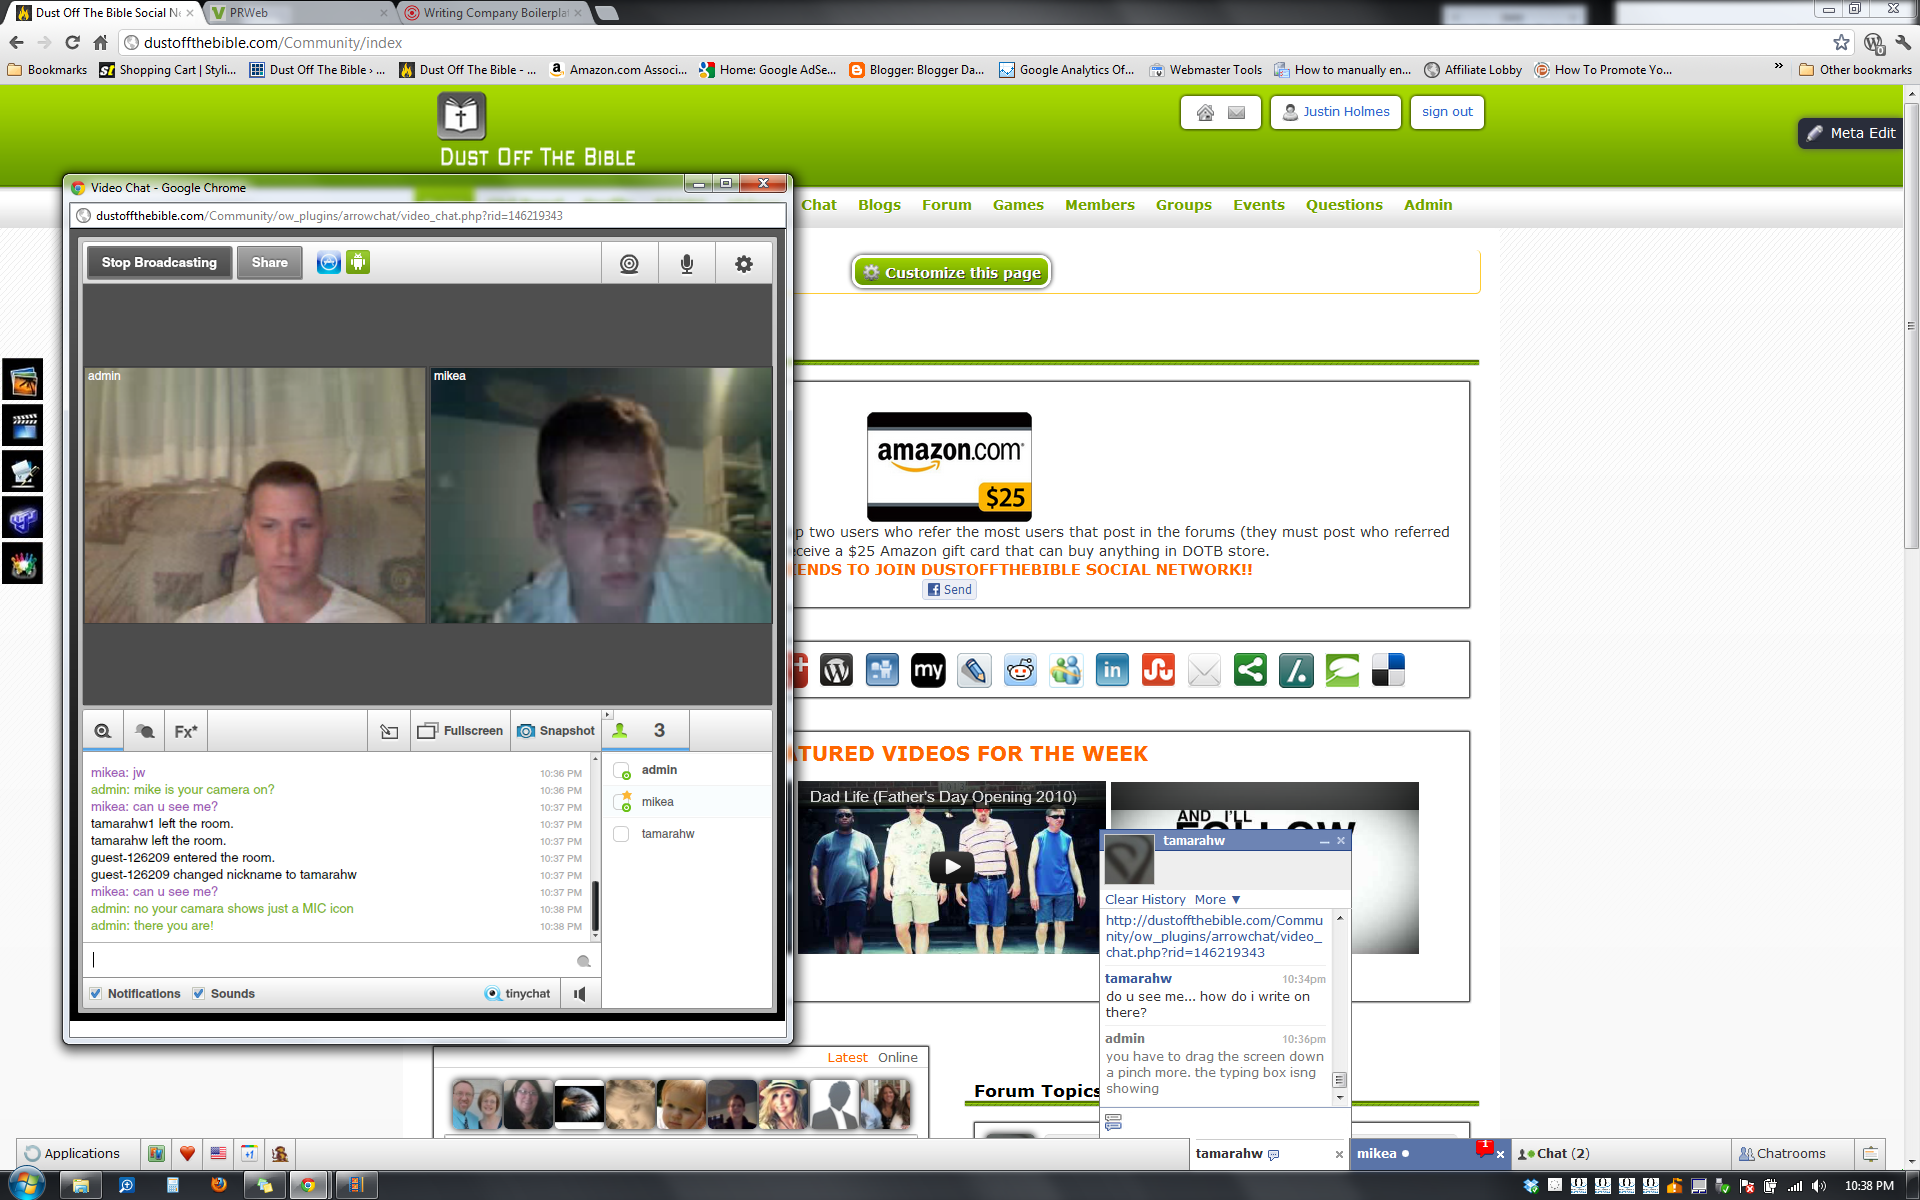 Video chat with friends Video Chat. Demo of the video chatting feature